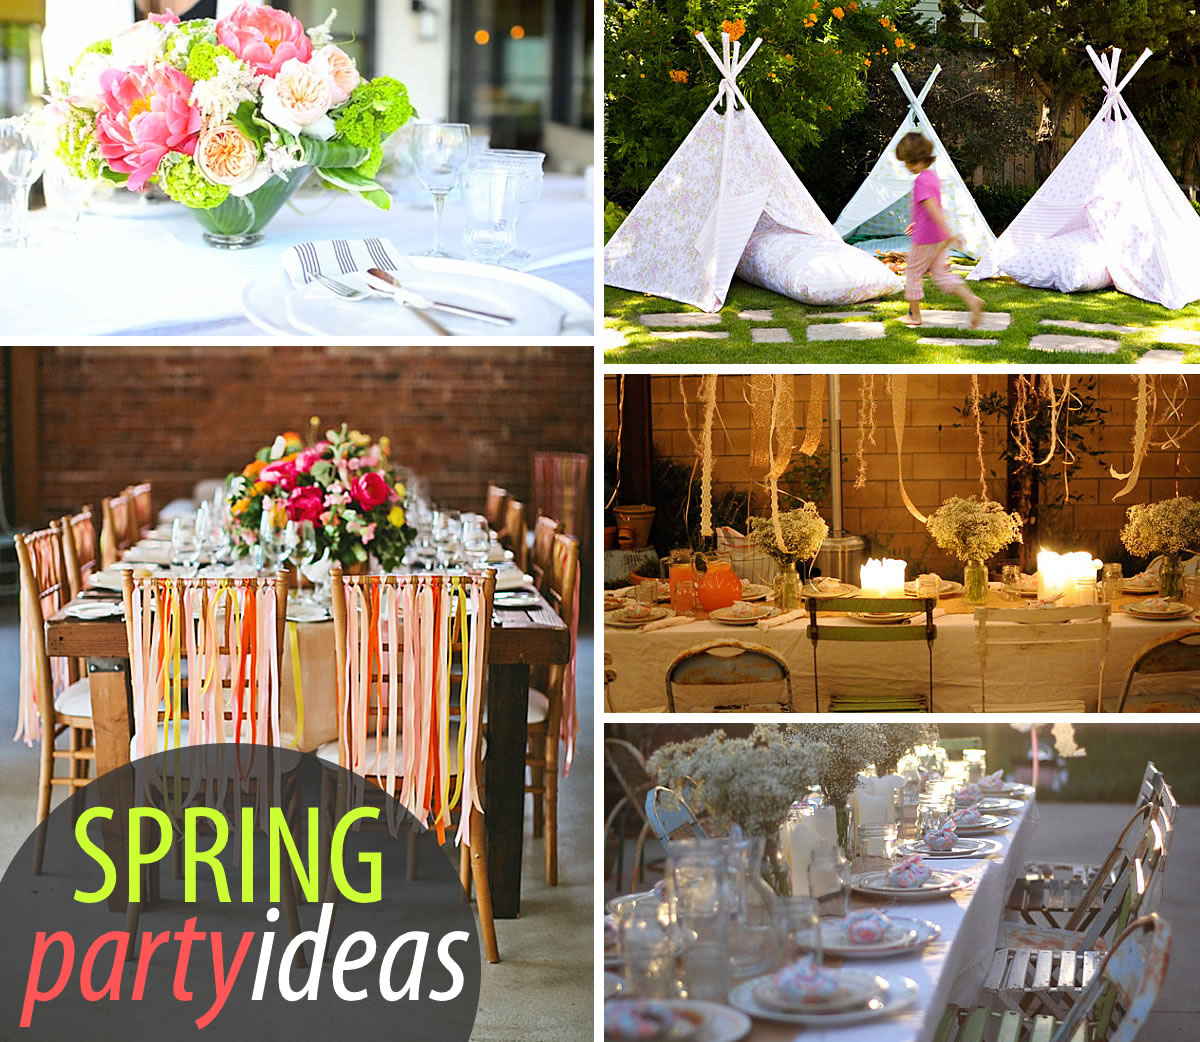 Dinner Theme Party Ideas Part - 31: 20 Colorful Spring Party Ideas